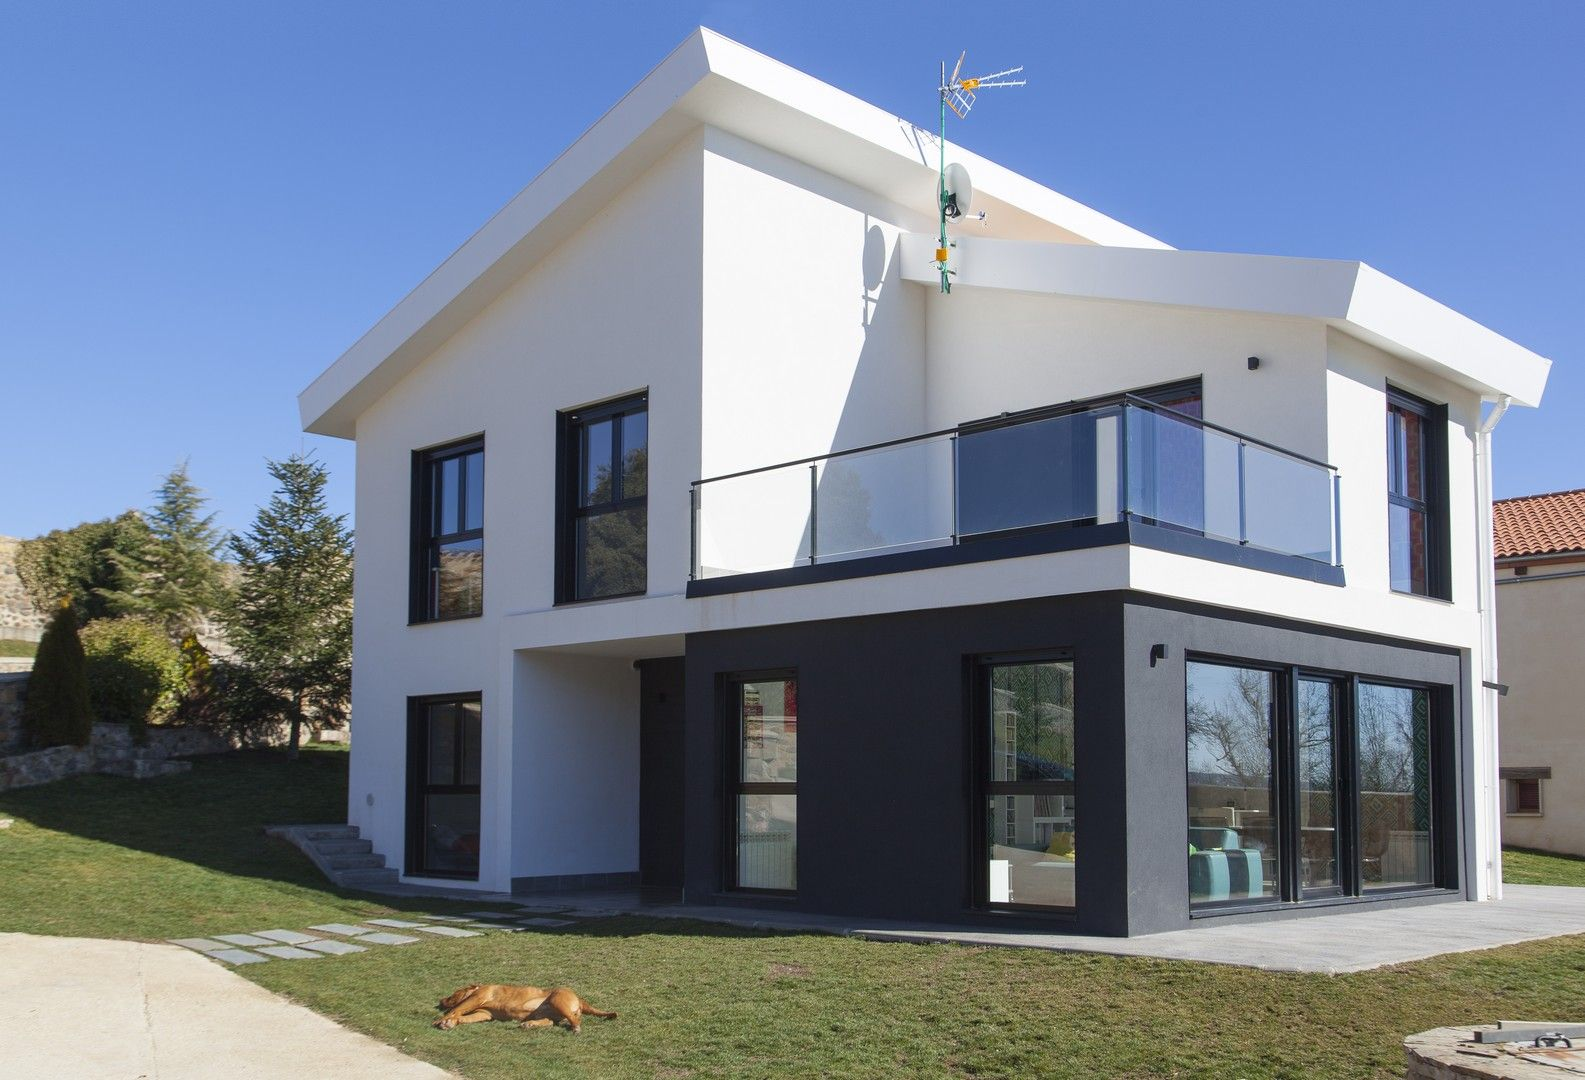 SORIA - Steel modular home projects